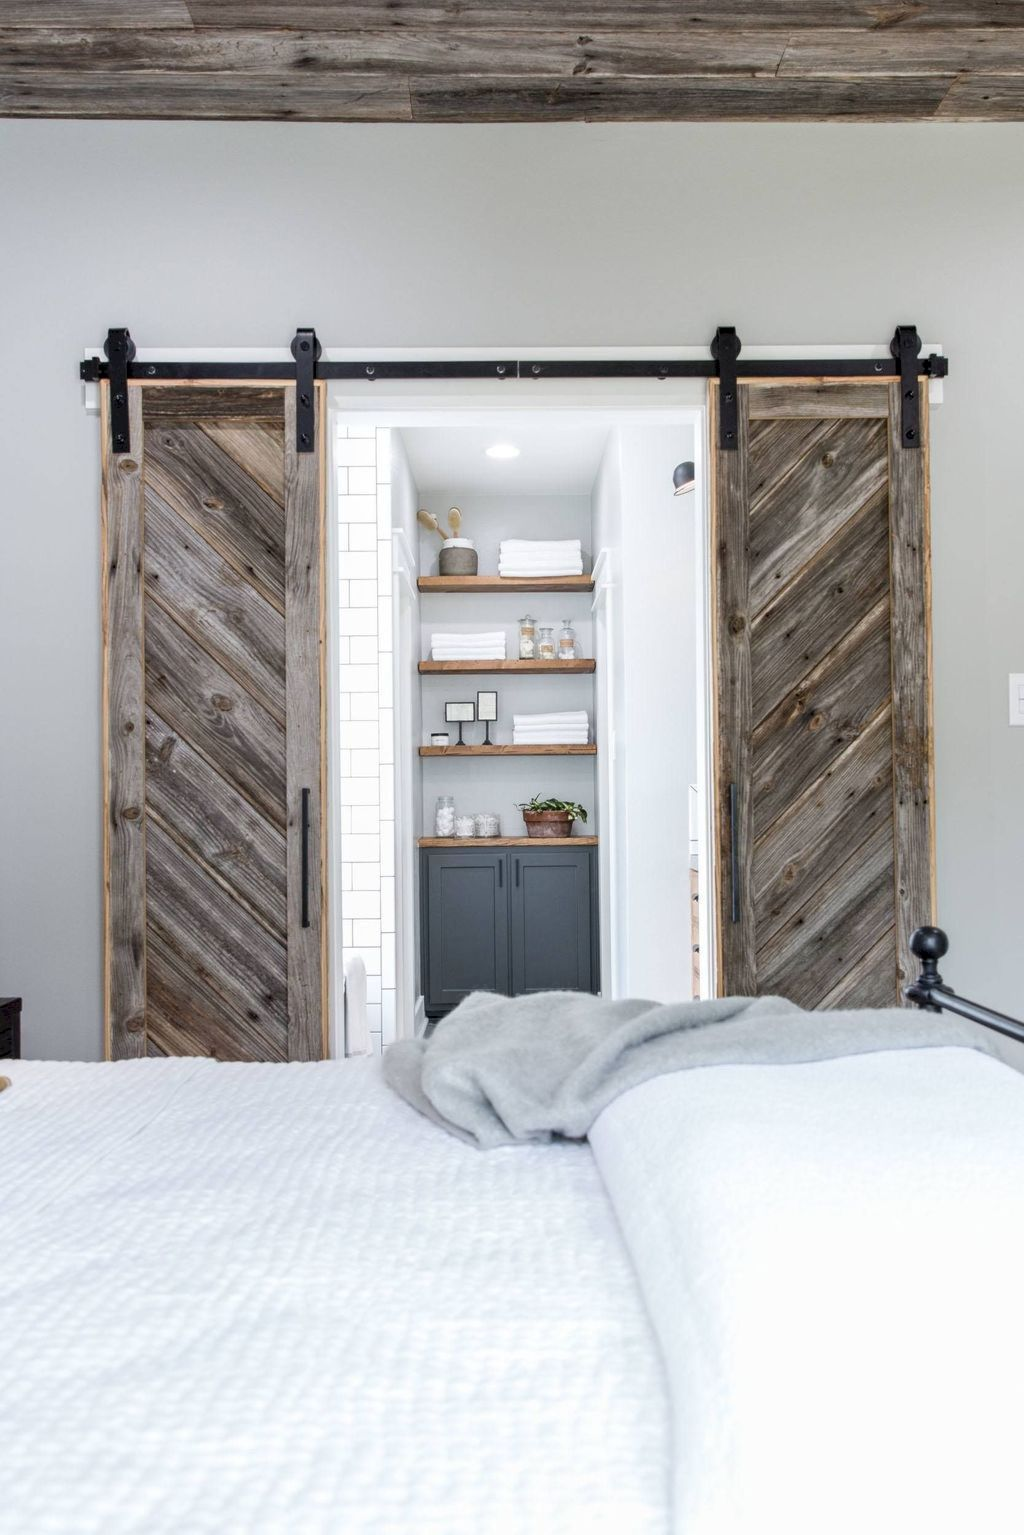 Barn style sliding doors applied as bedroom doors showing a rustic accent in the modern country homes Image 11